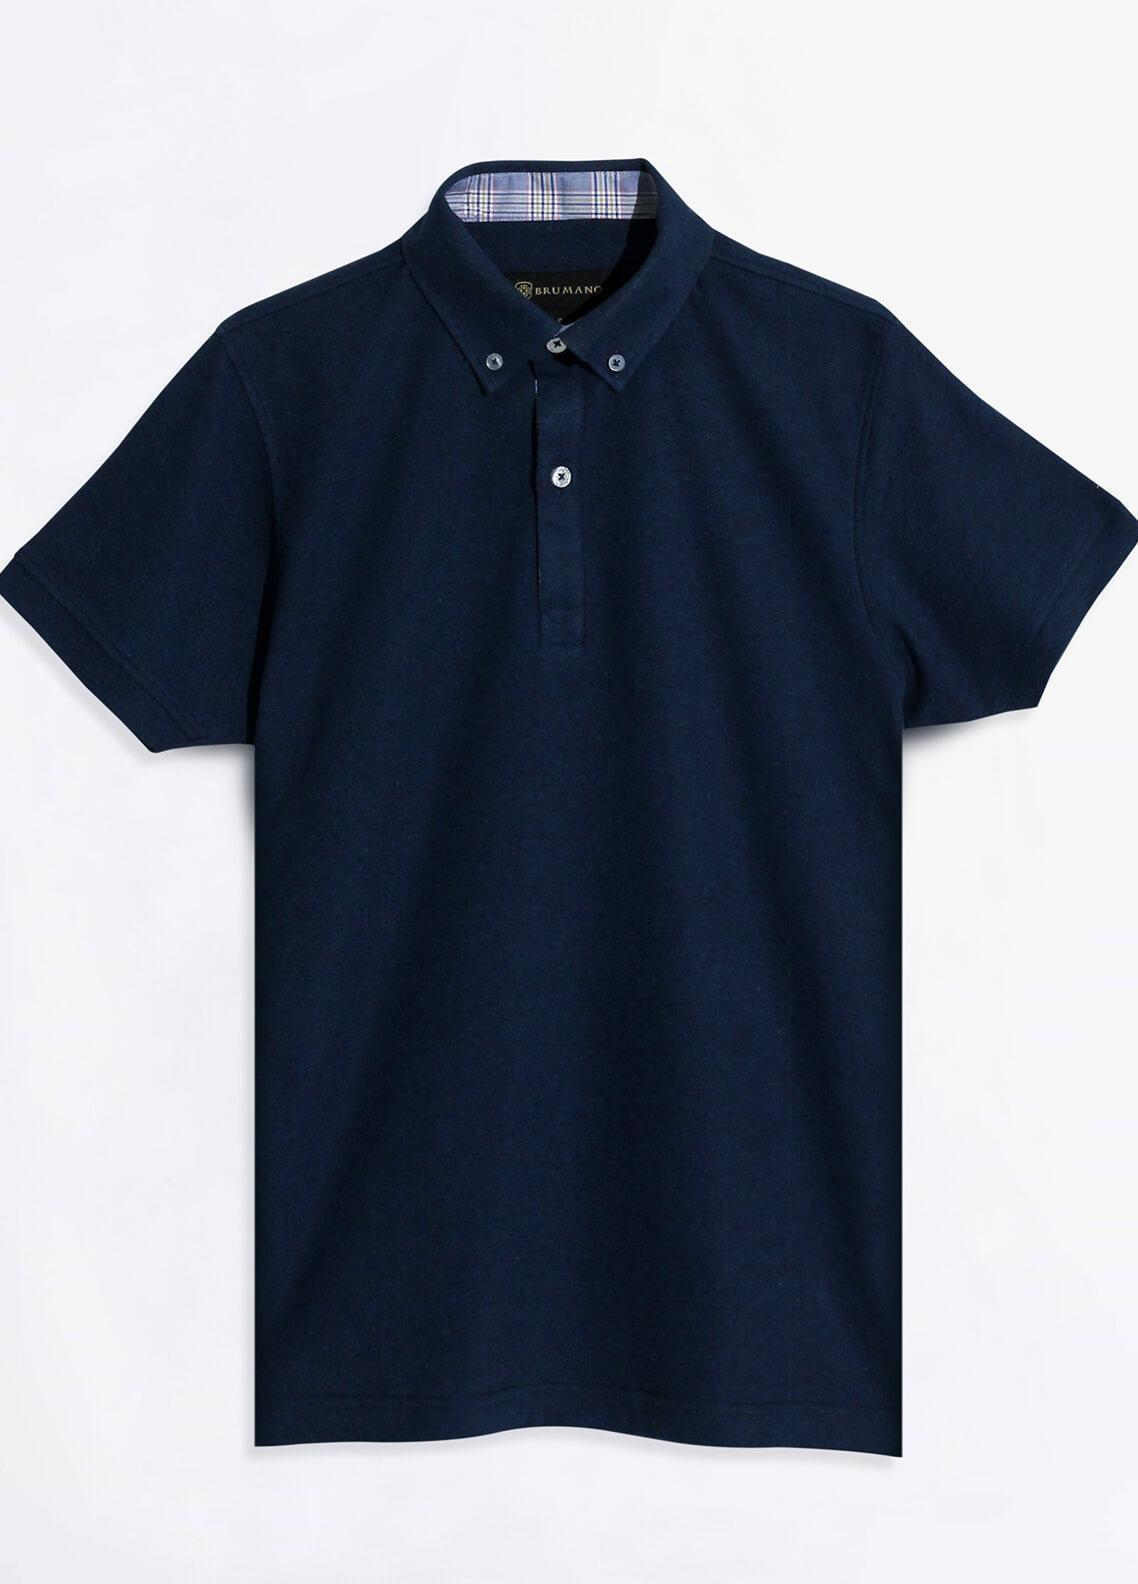 Brumano Cotton Polo Shirts for Men - Navy Blue BRM-41-105